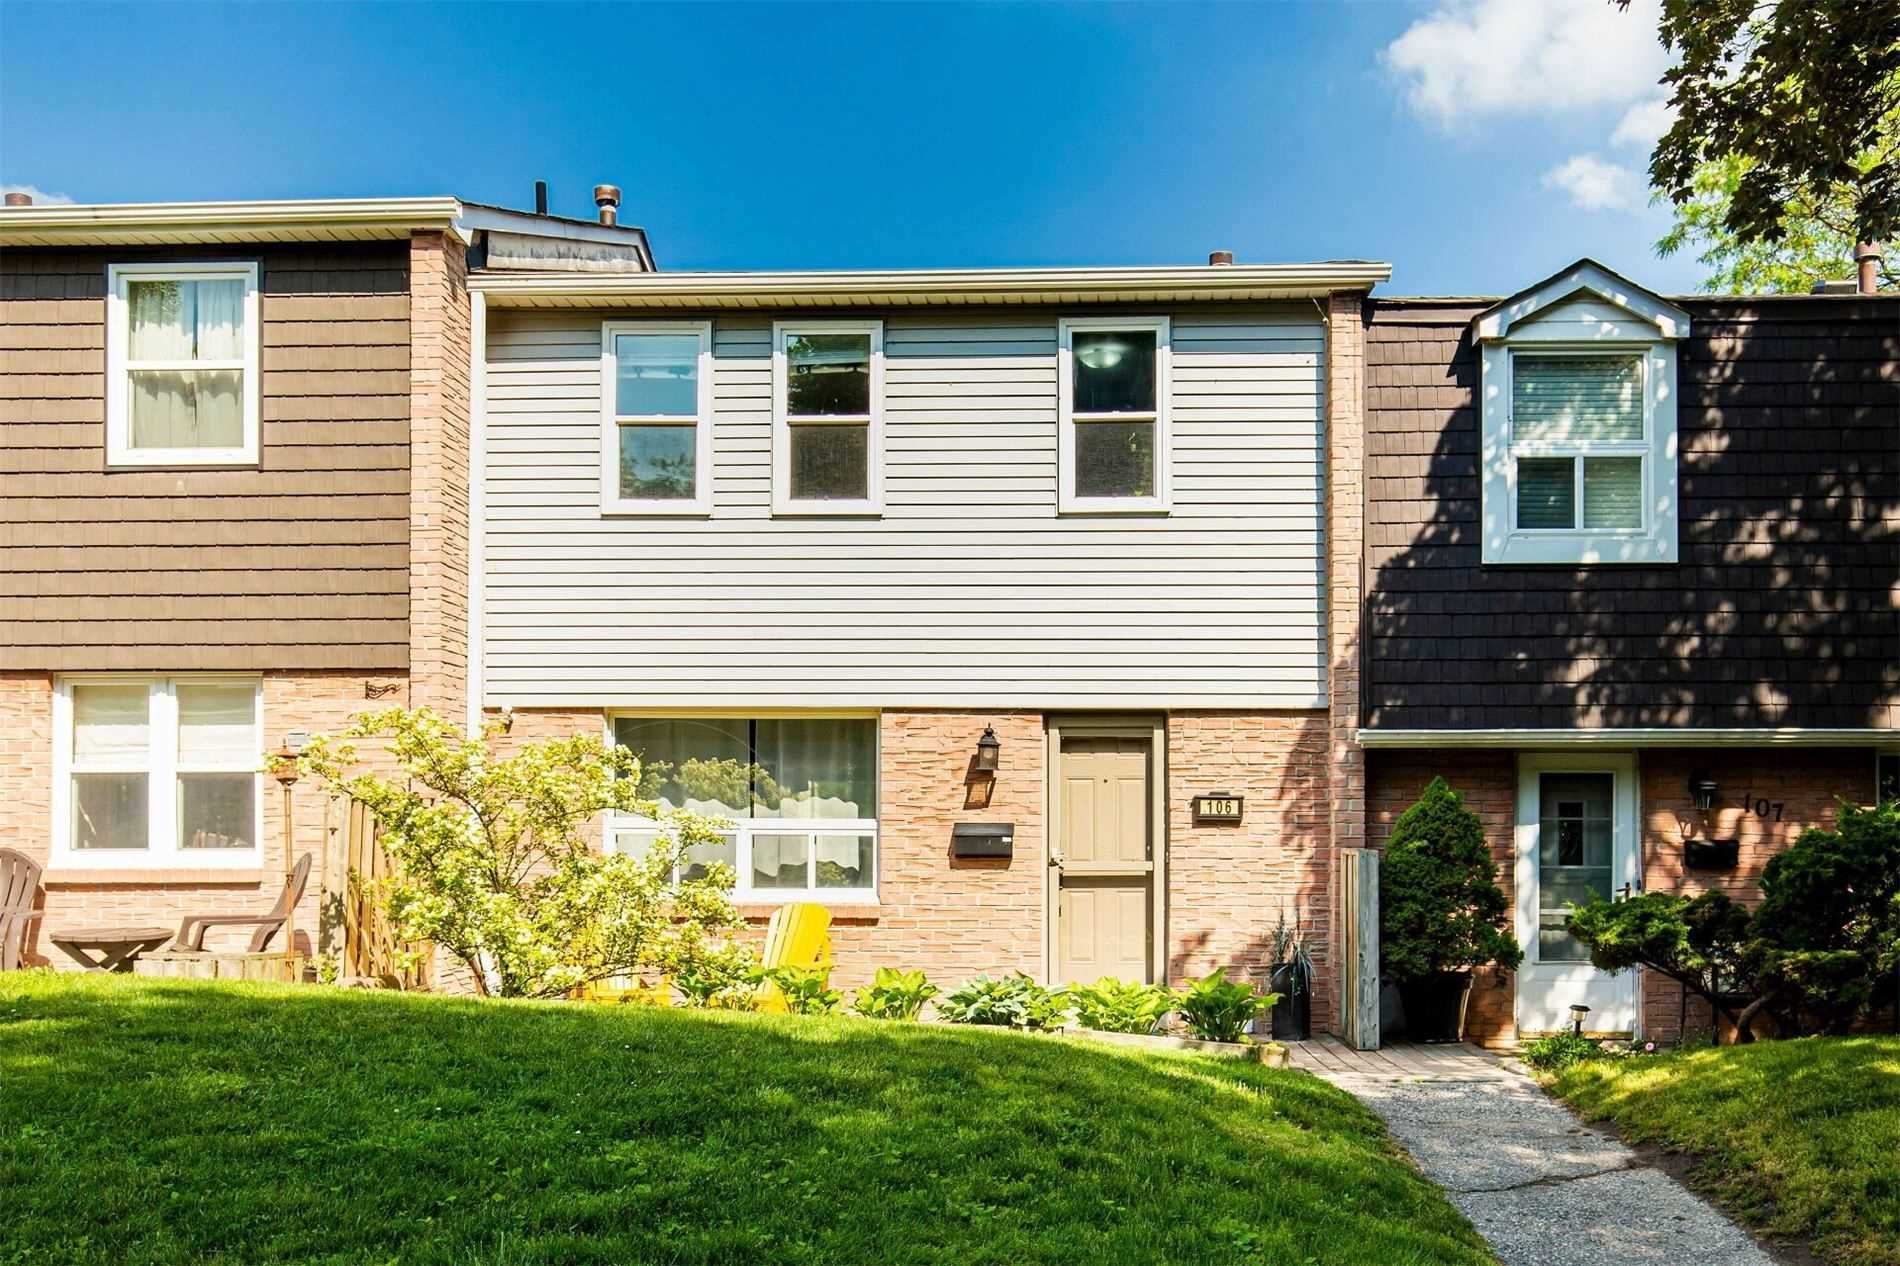 1050 Shawnmarr Rd, unit 106 for sale in Toronto - image #1